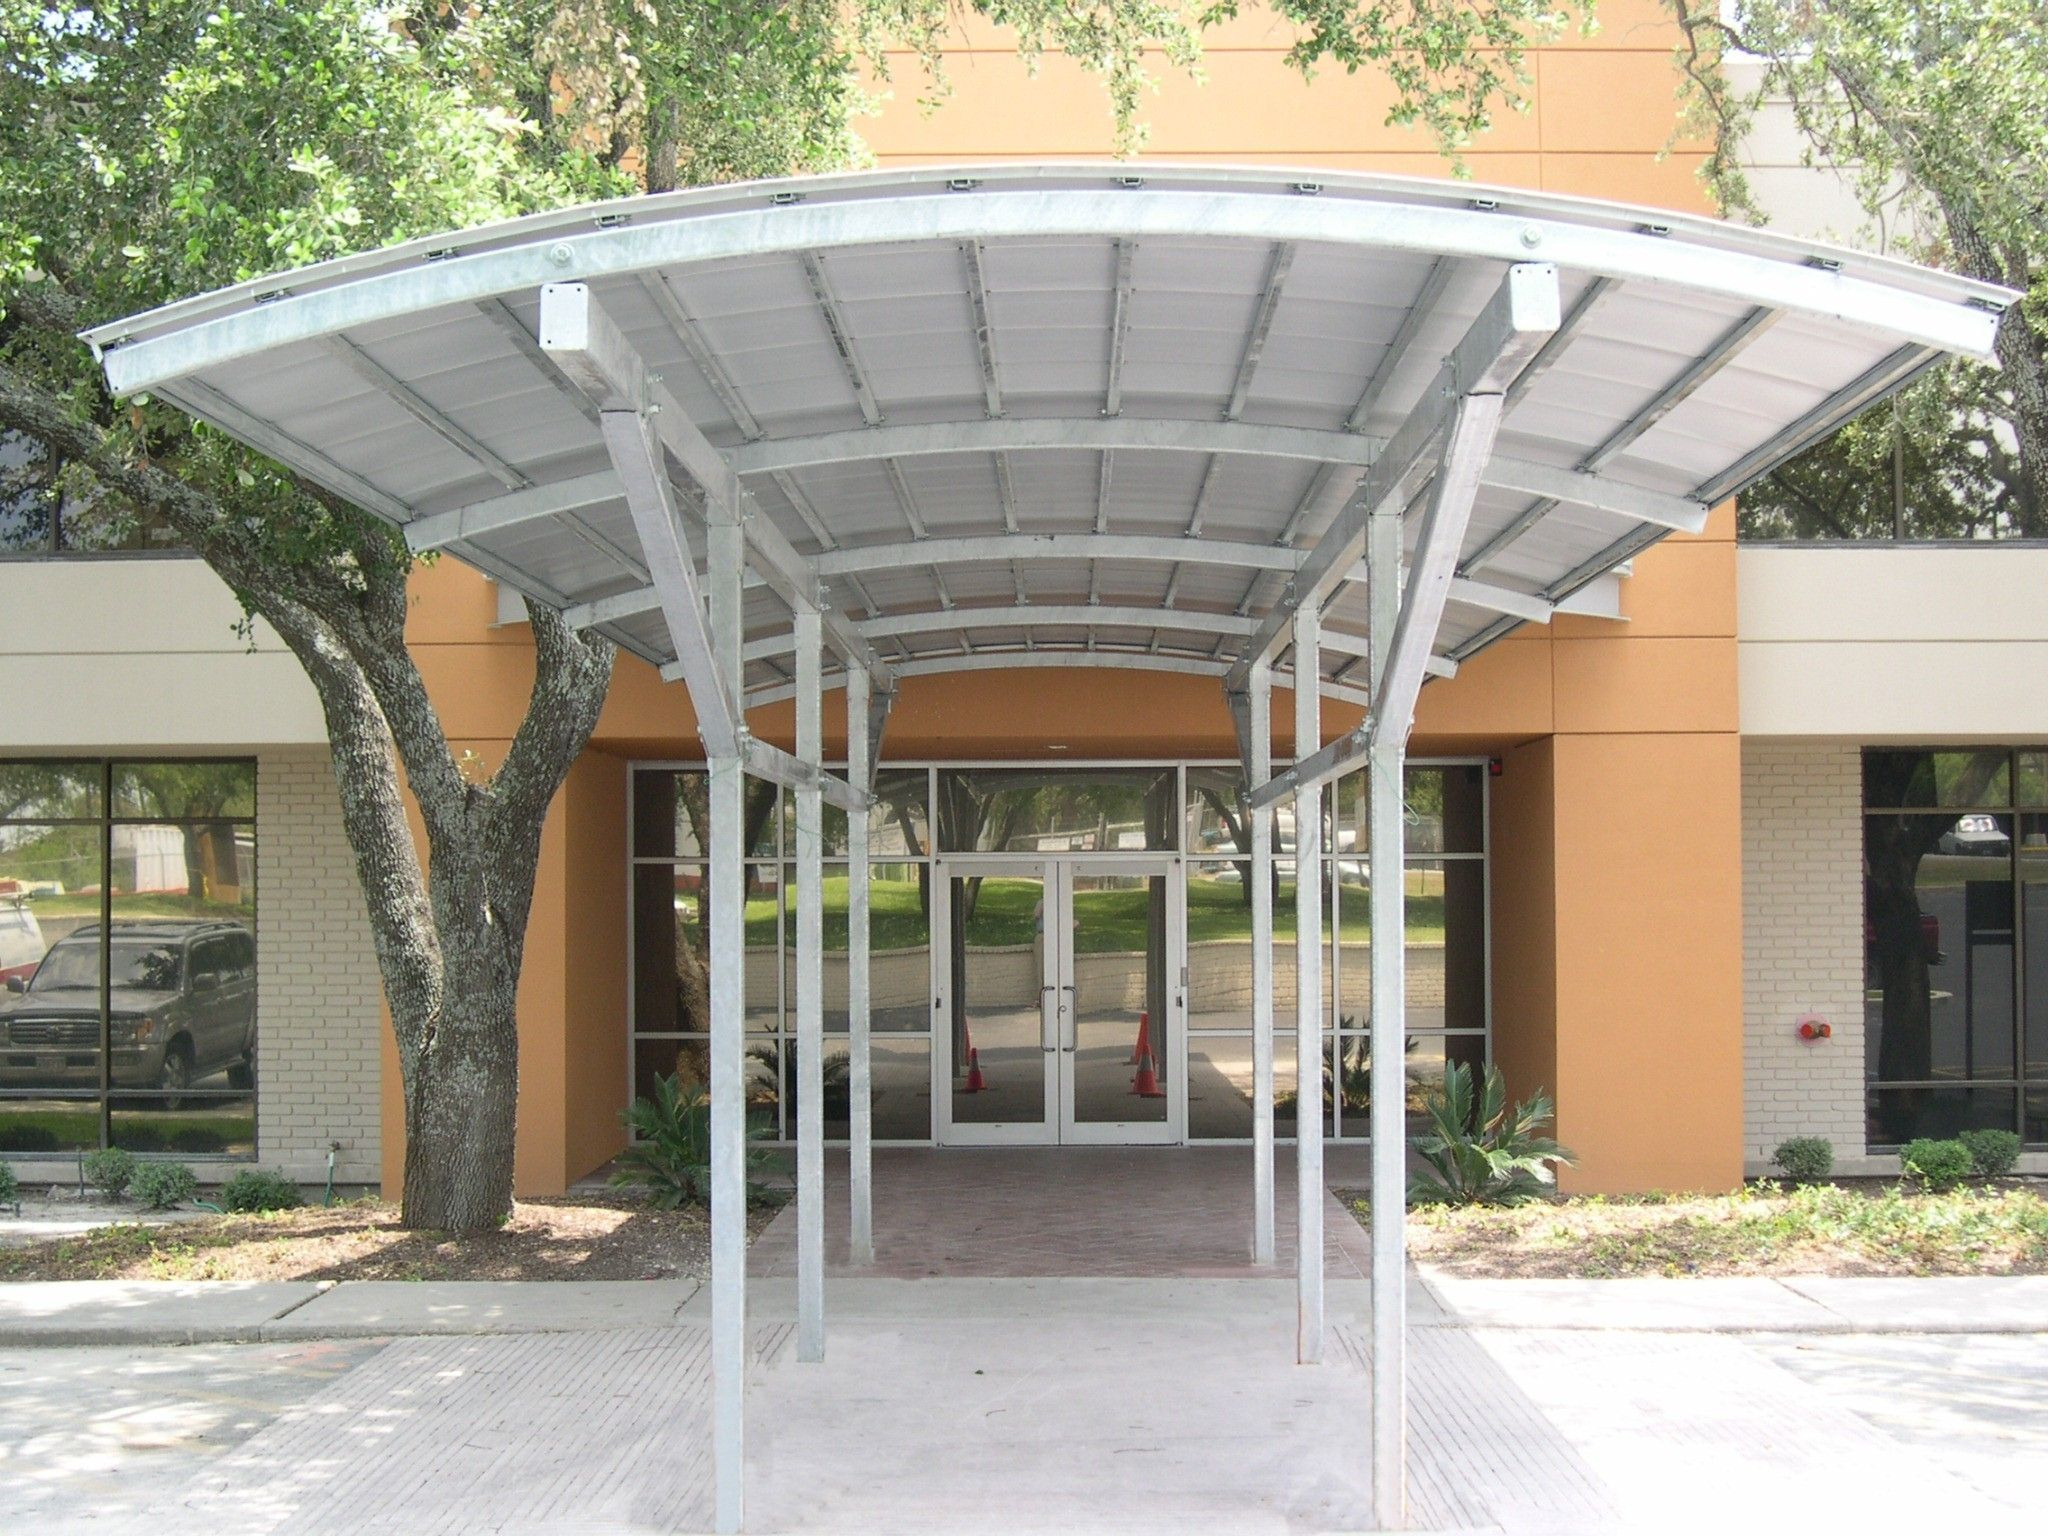 Commercial Entrance Canopies | Metal Awnings & Canopies ...